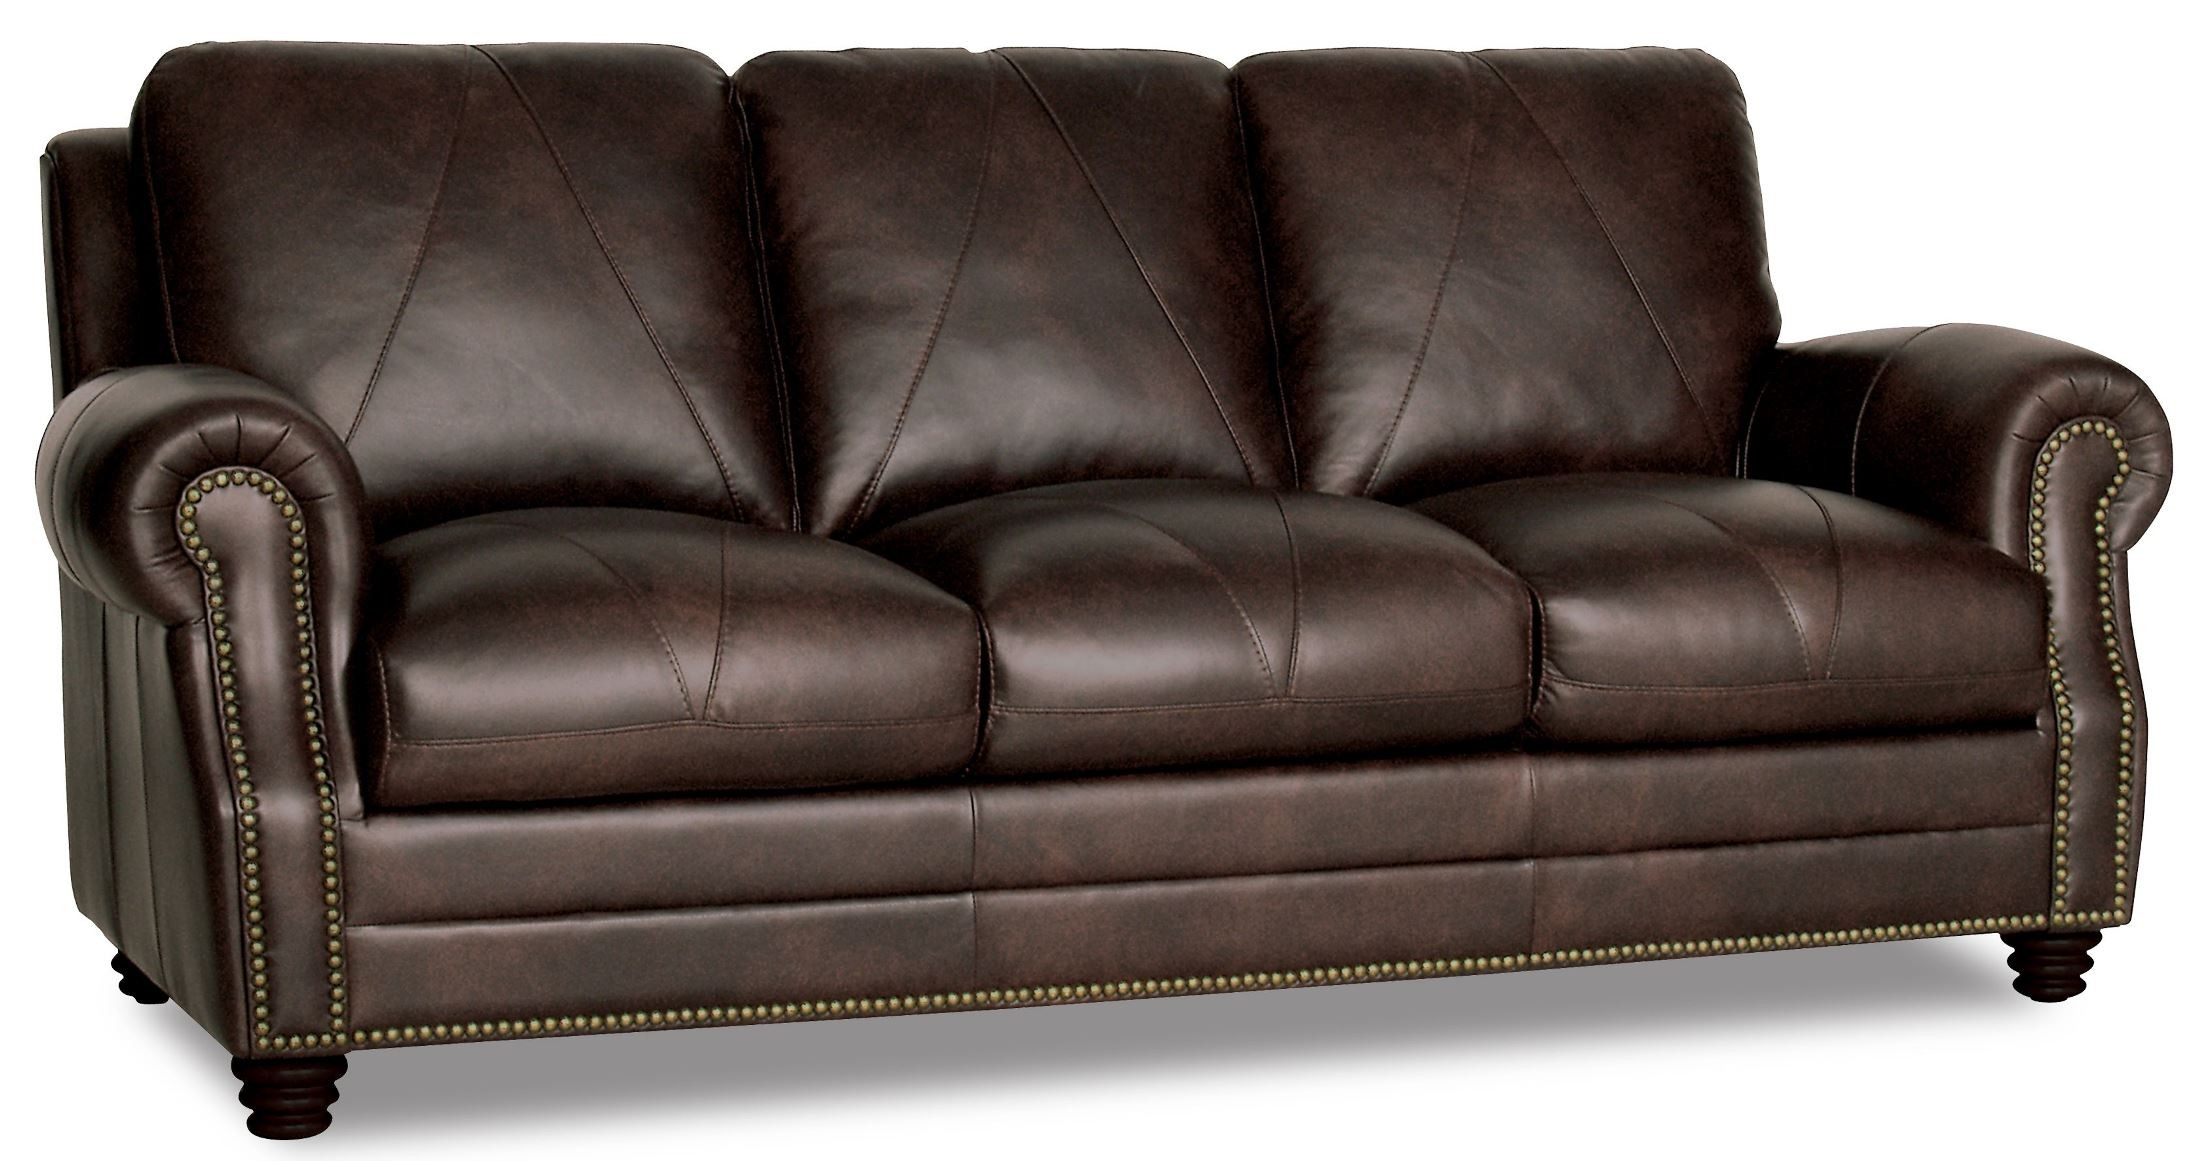 Solomon italian leather sofa from luke leather coleman for Italian leather sofa